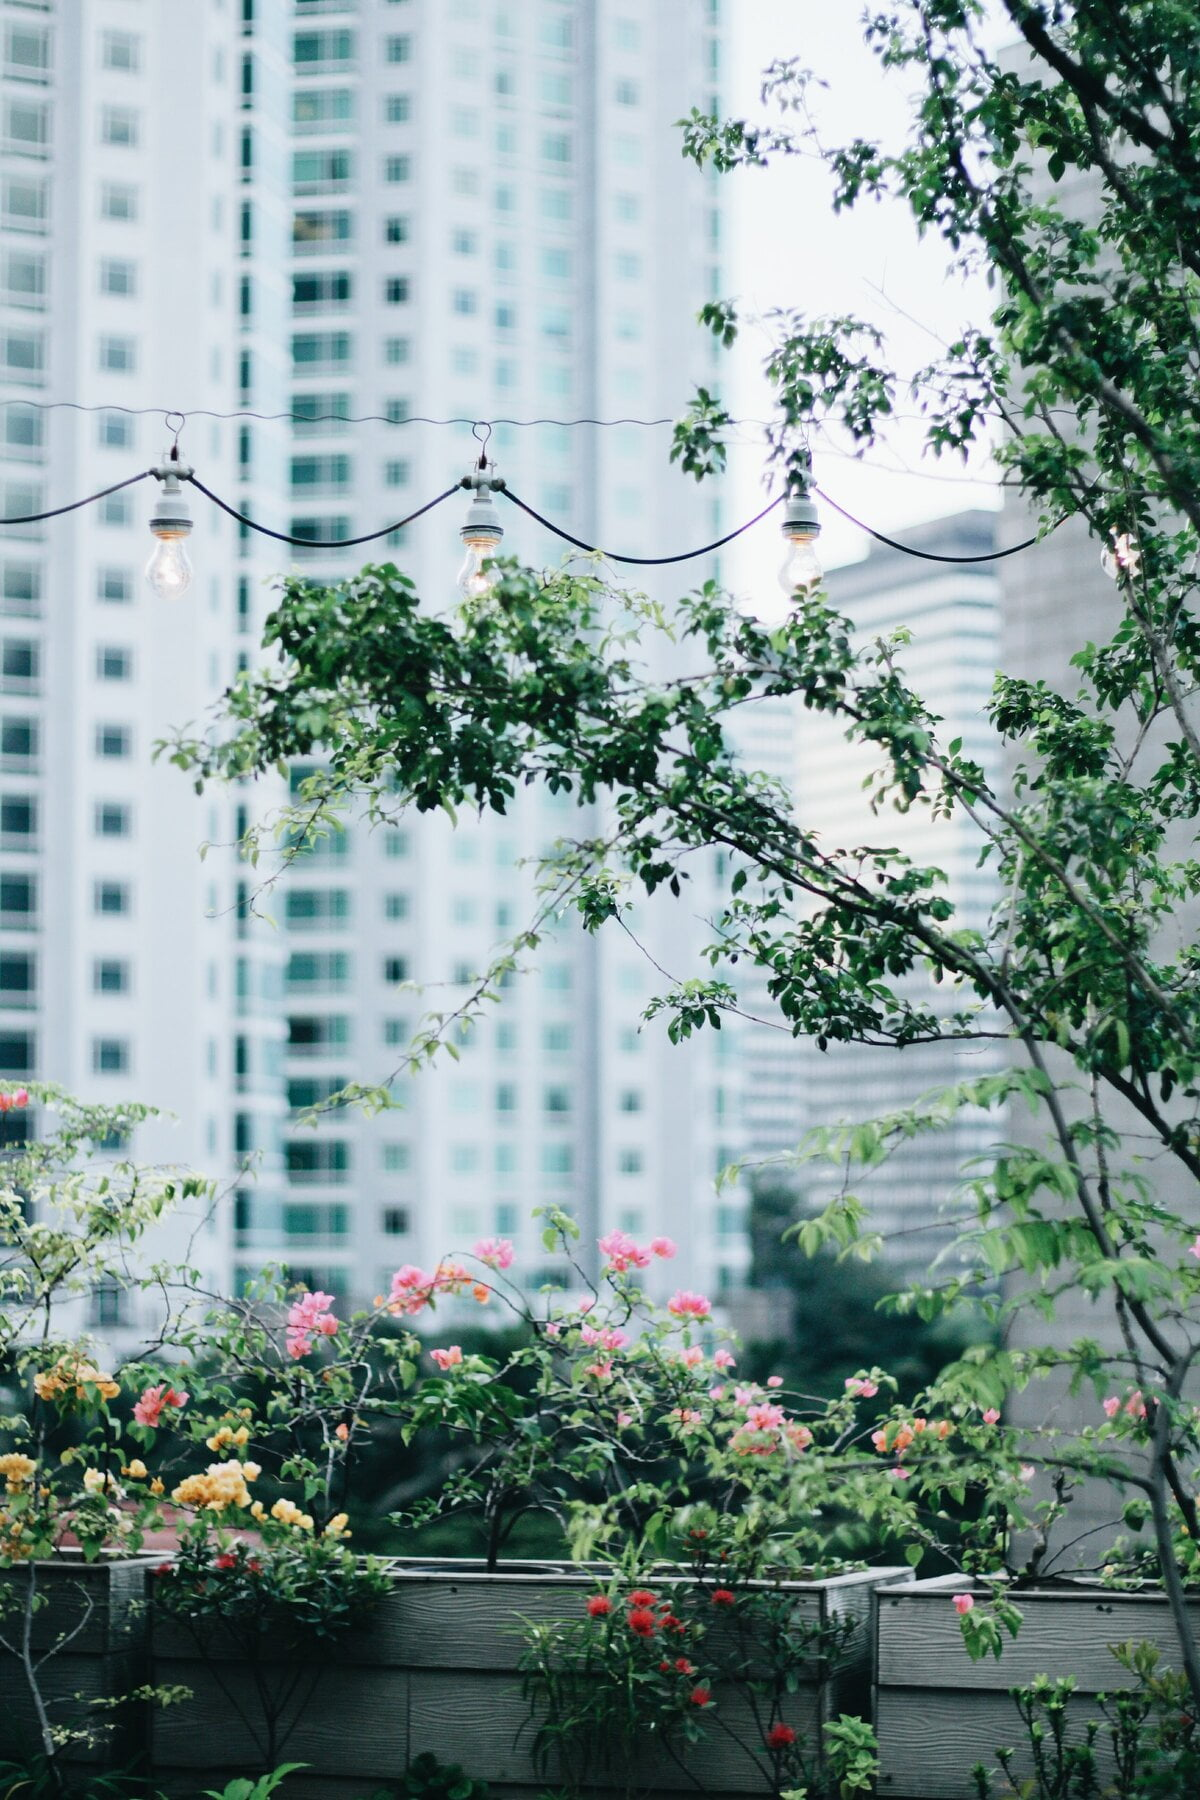 Image description. flowers on a balcony with a skyscraper in the background